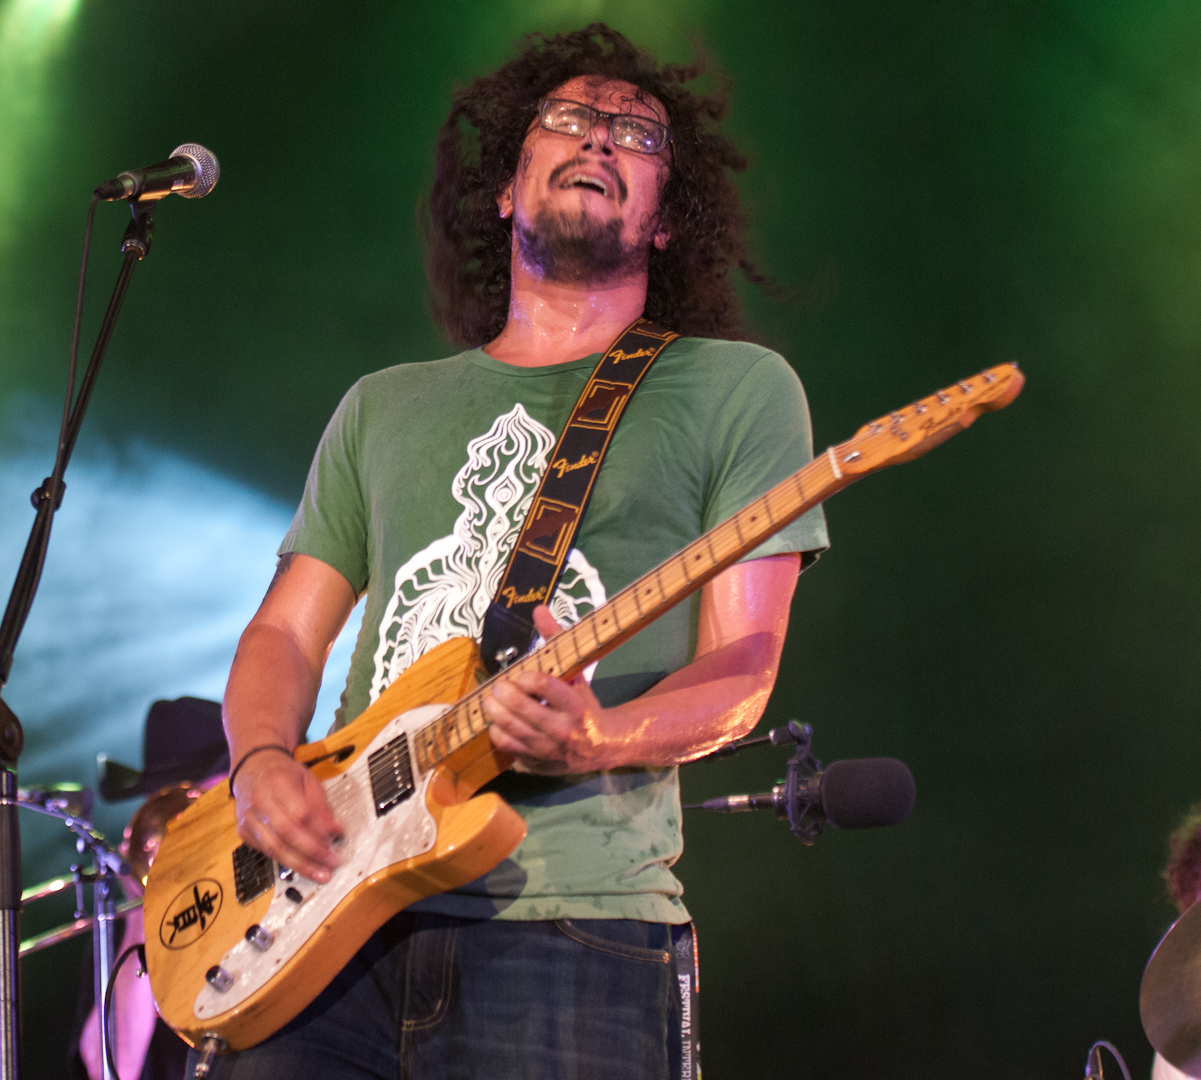 Sergio Rios with Orgone at the Montreal International Jazz Festival 2012